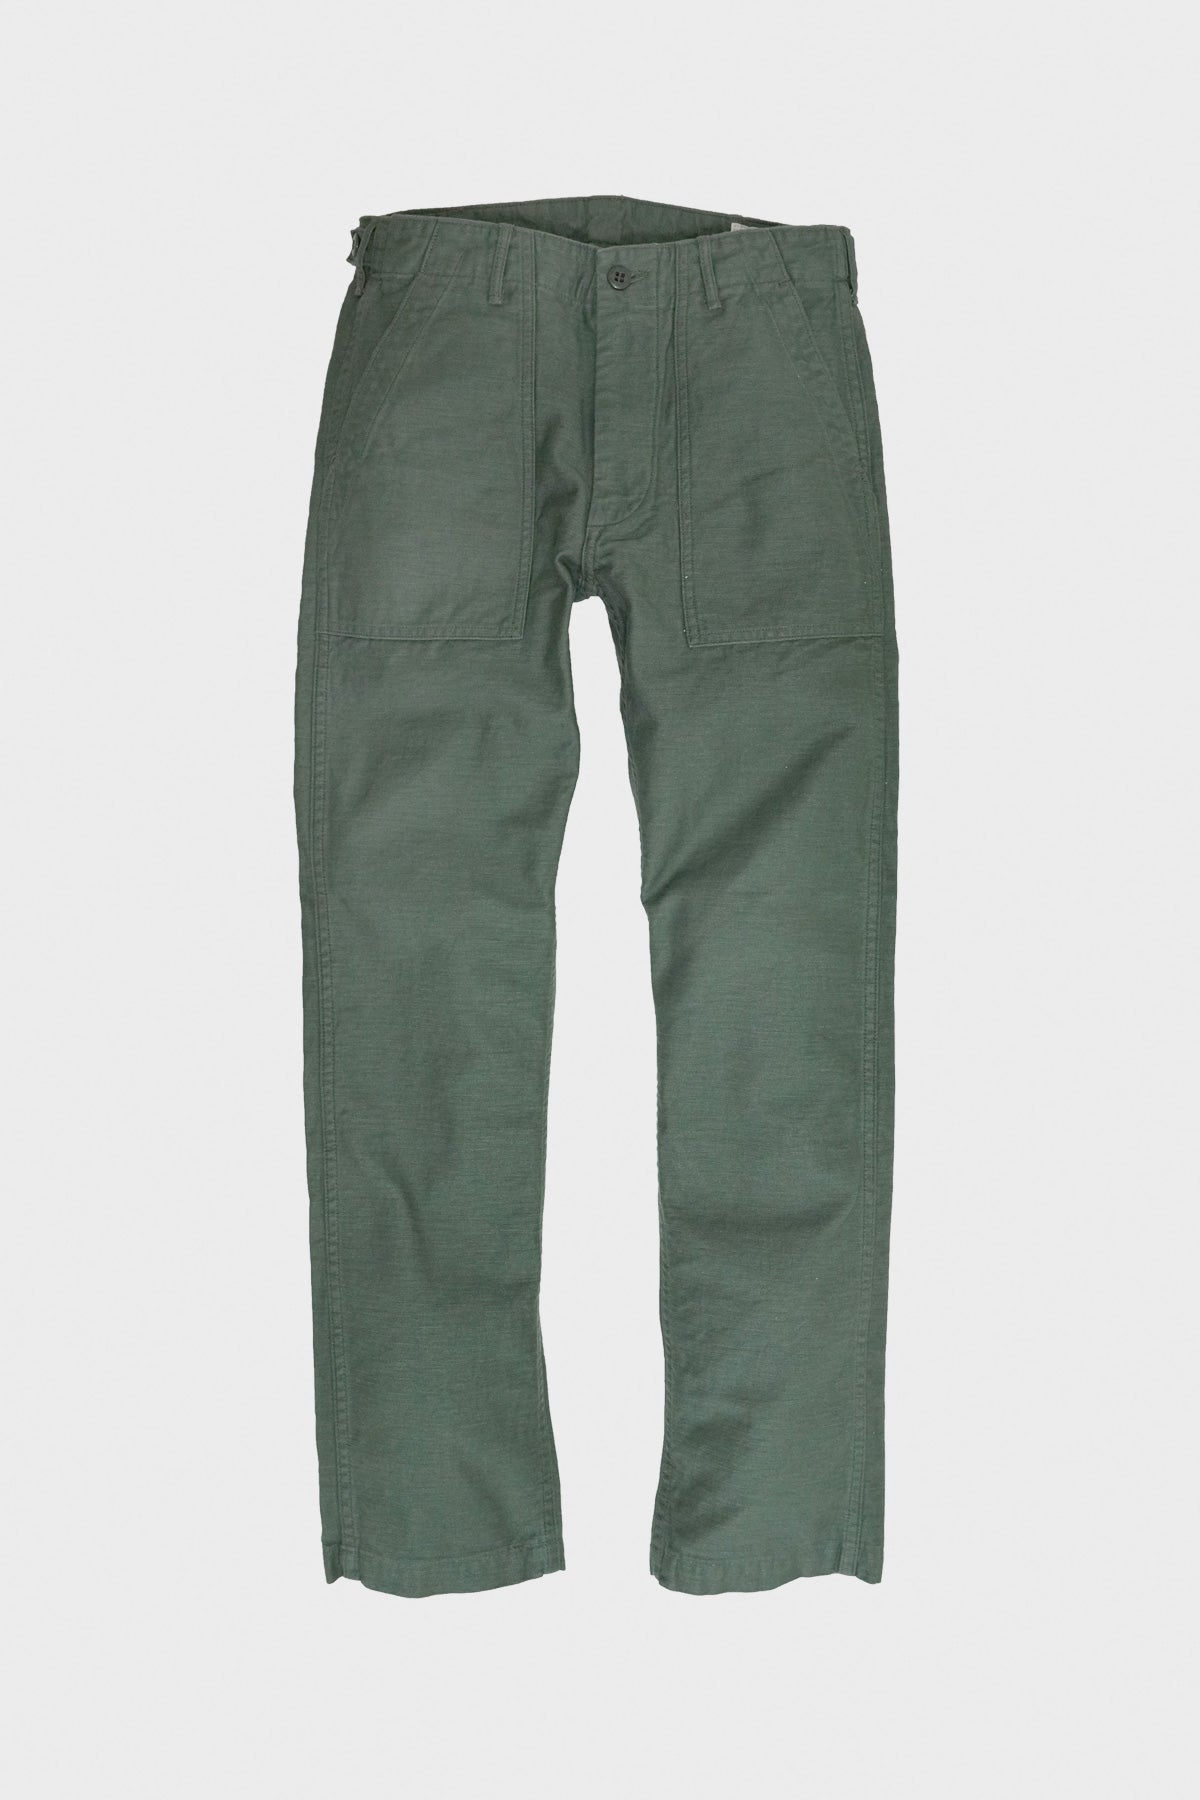 orSlow - Slim Fit Fatigue Pants - Olive Reverse Sateen - Canoe Club